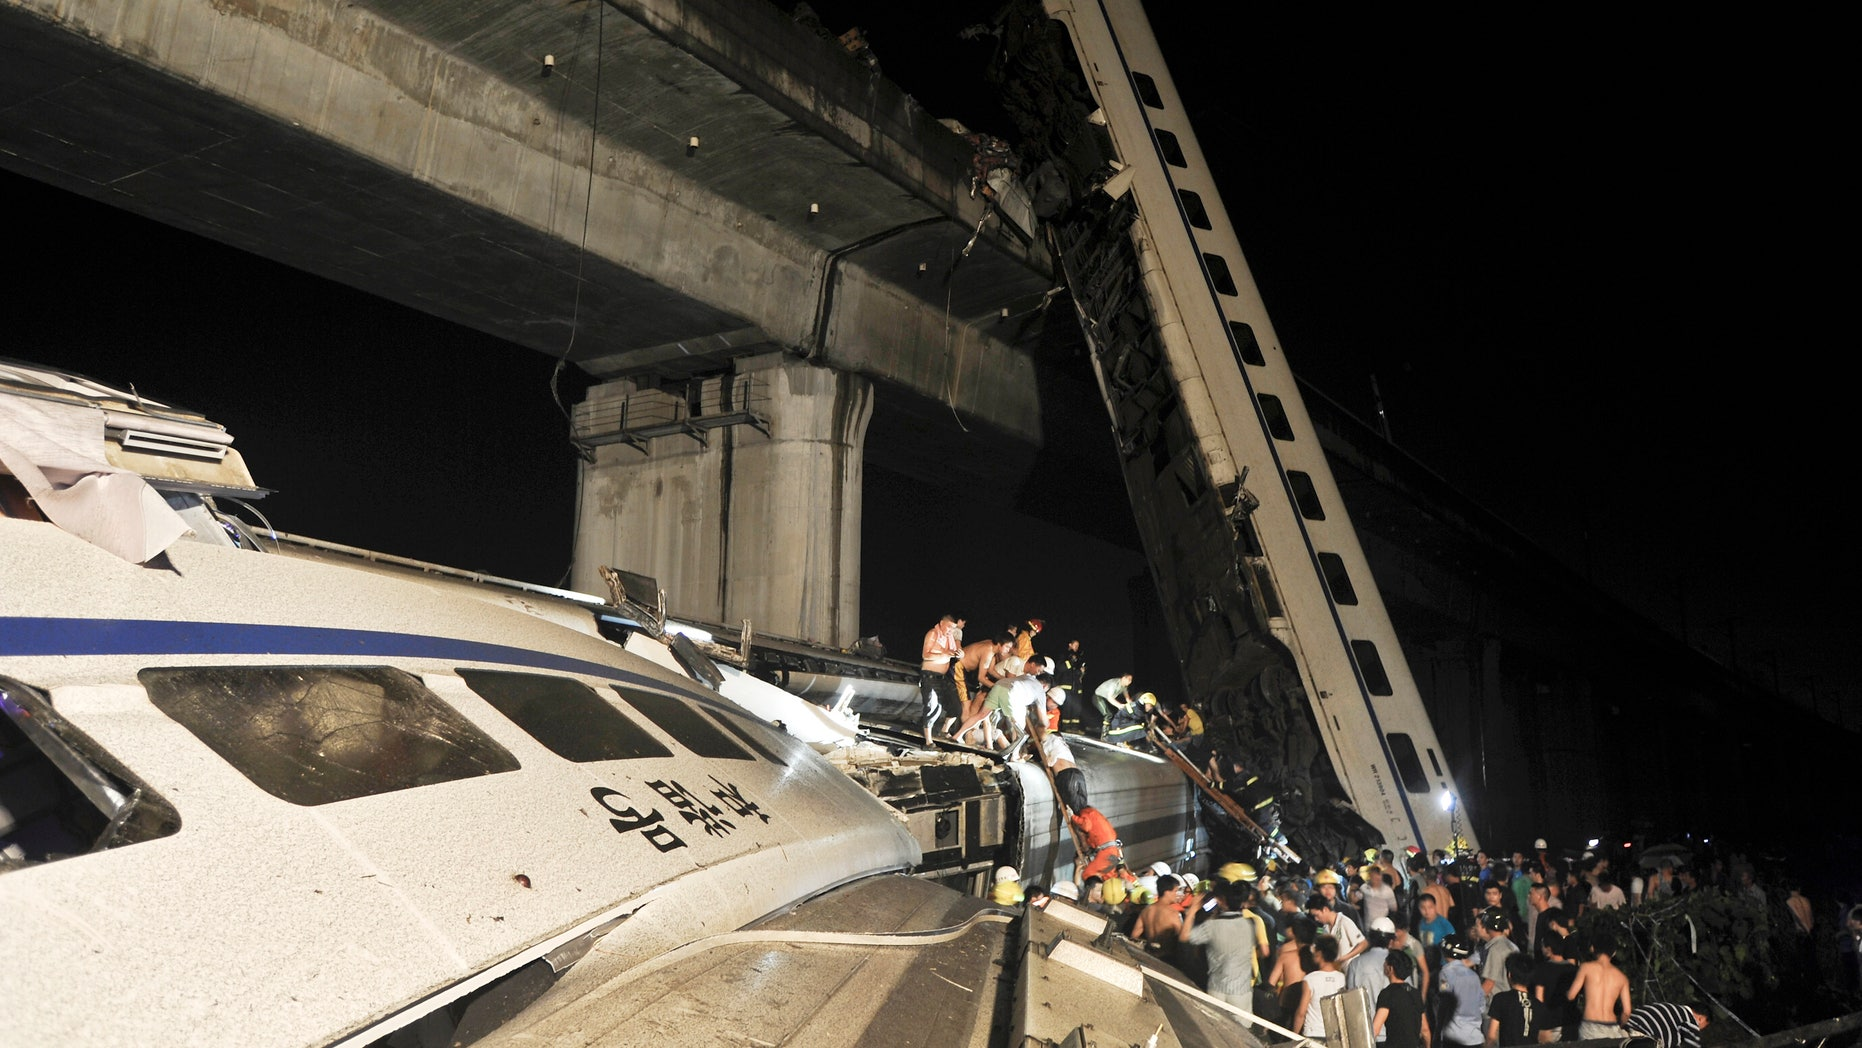 Emergency workers and people work to help passengers from the wreckage of train after two carriages from a high-speed train derailed and fell off a bridge in Wenzhou in east China's Zhejiang province Saturday July 23, 2011.